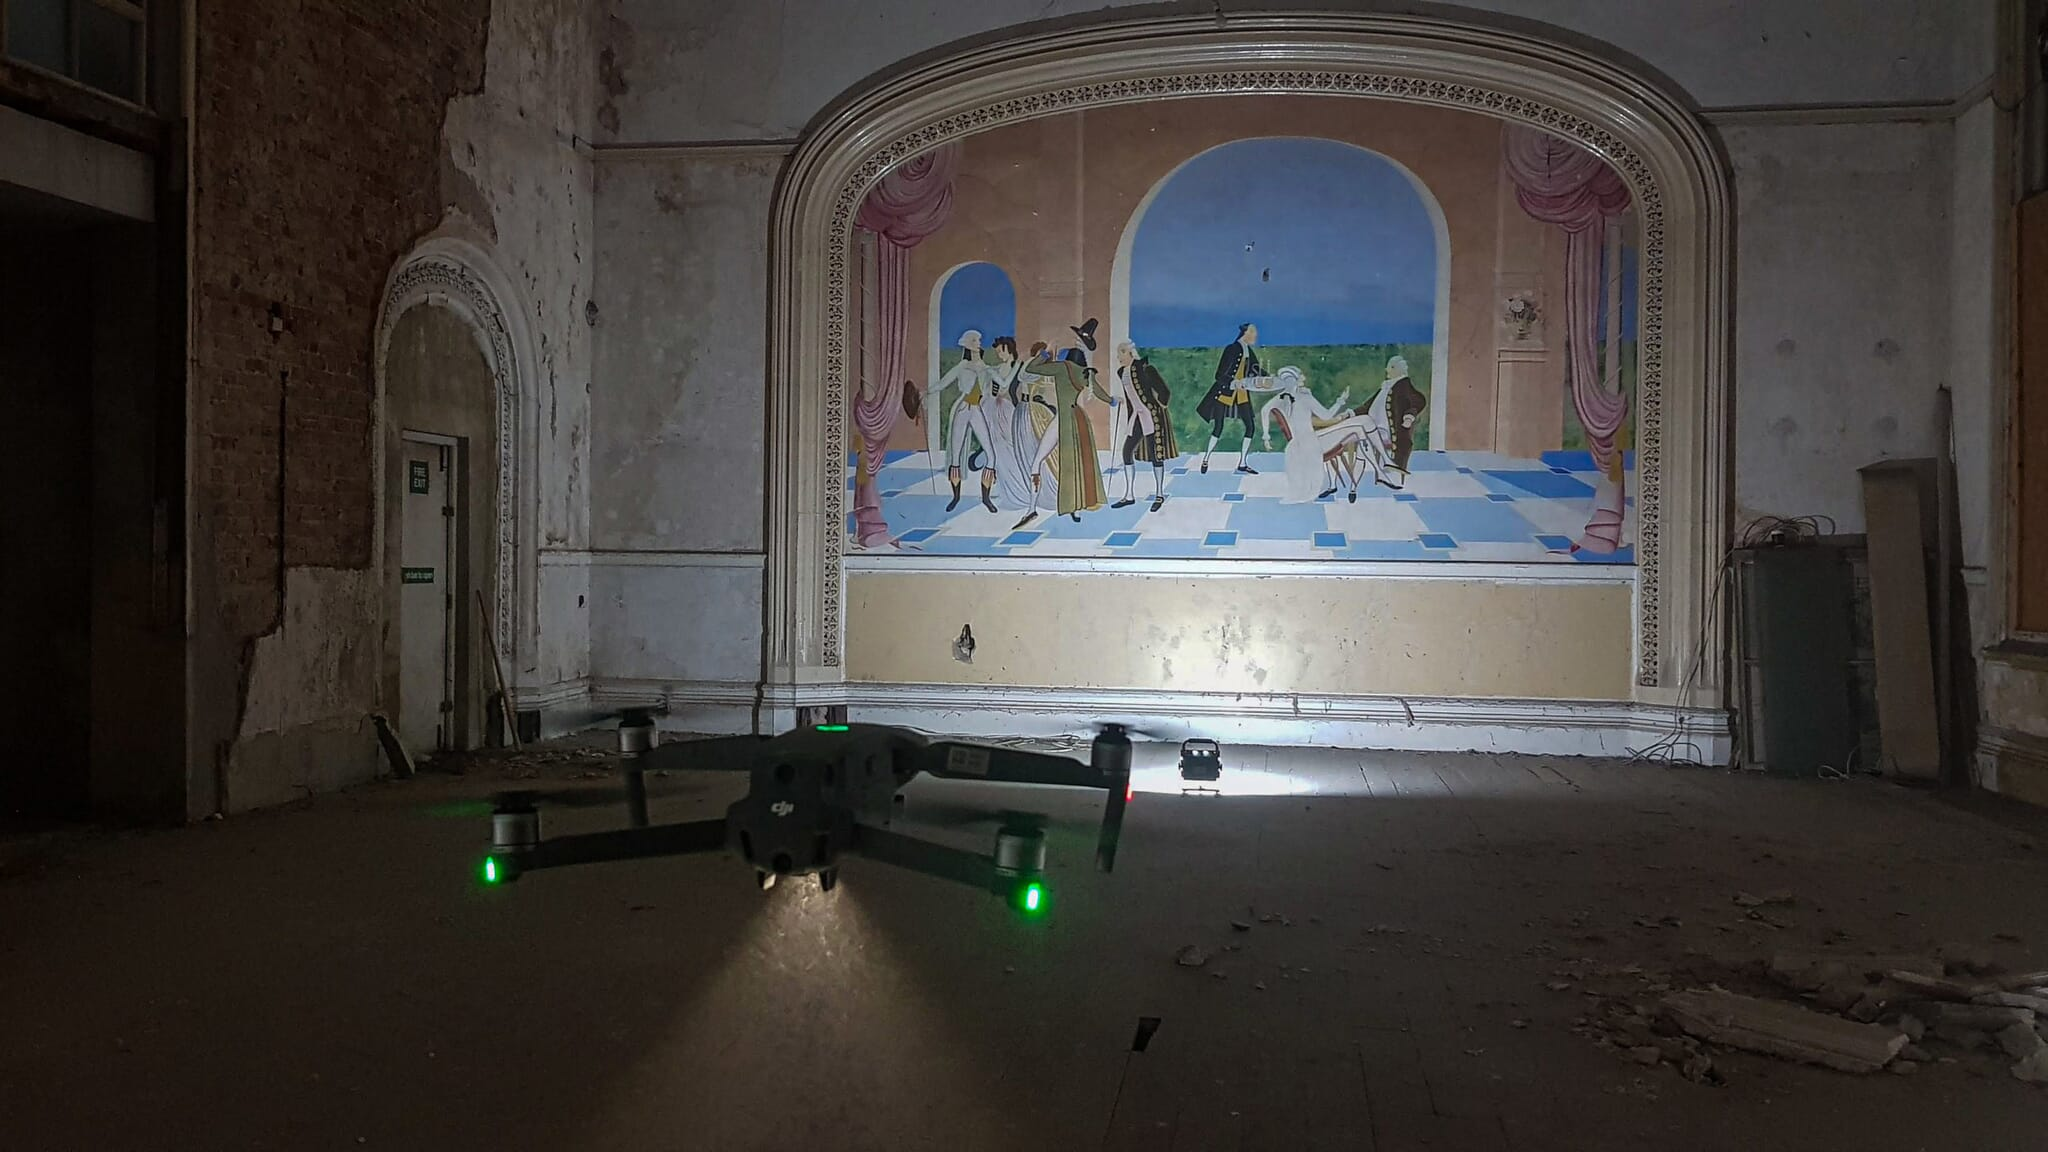 Mavic 2 drone flying indoors